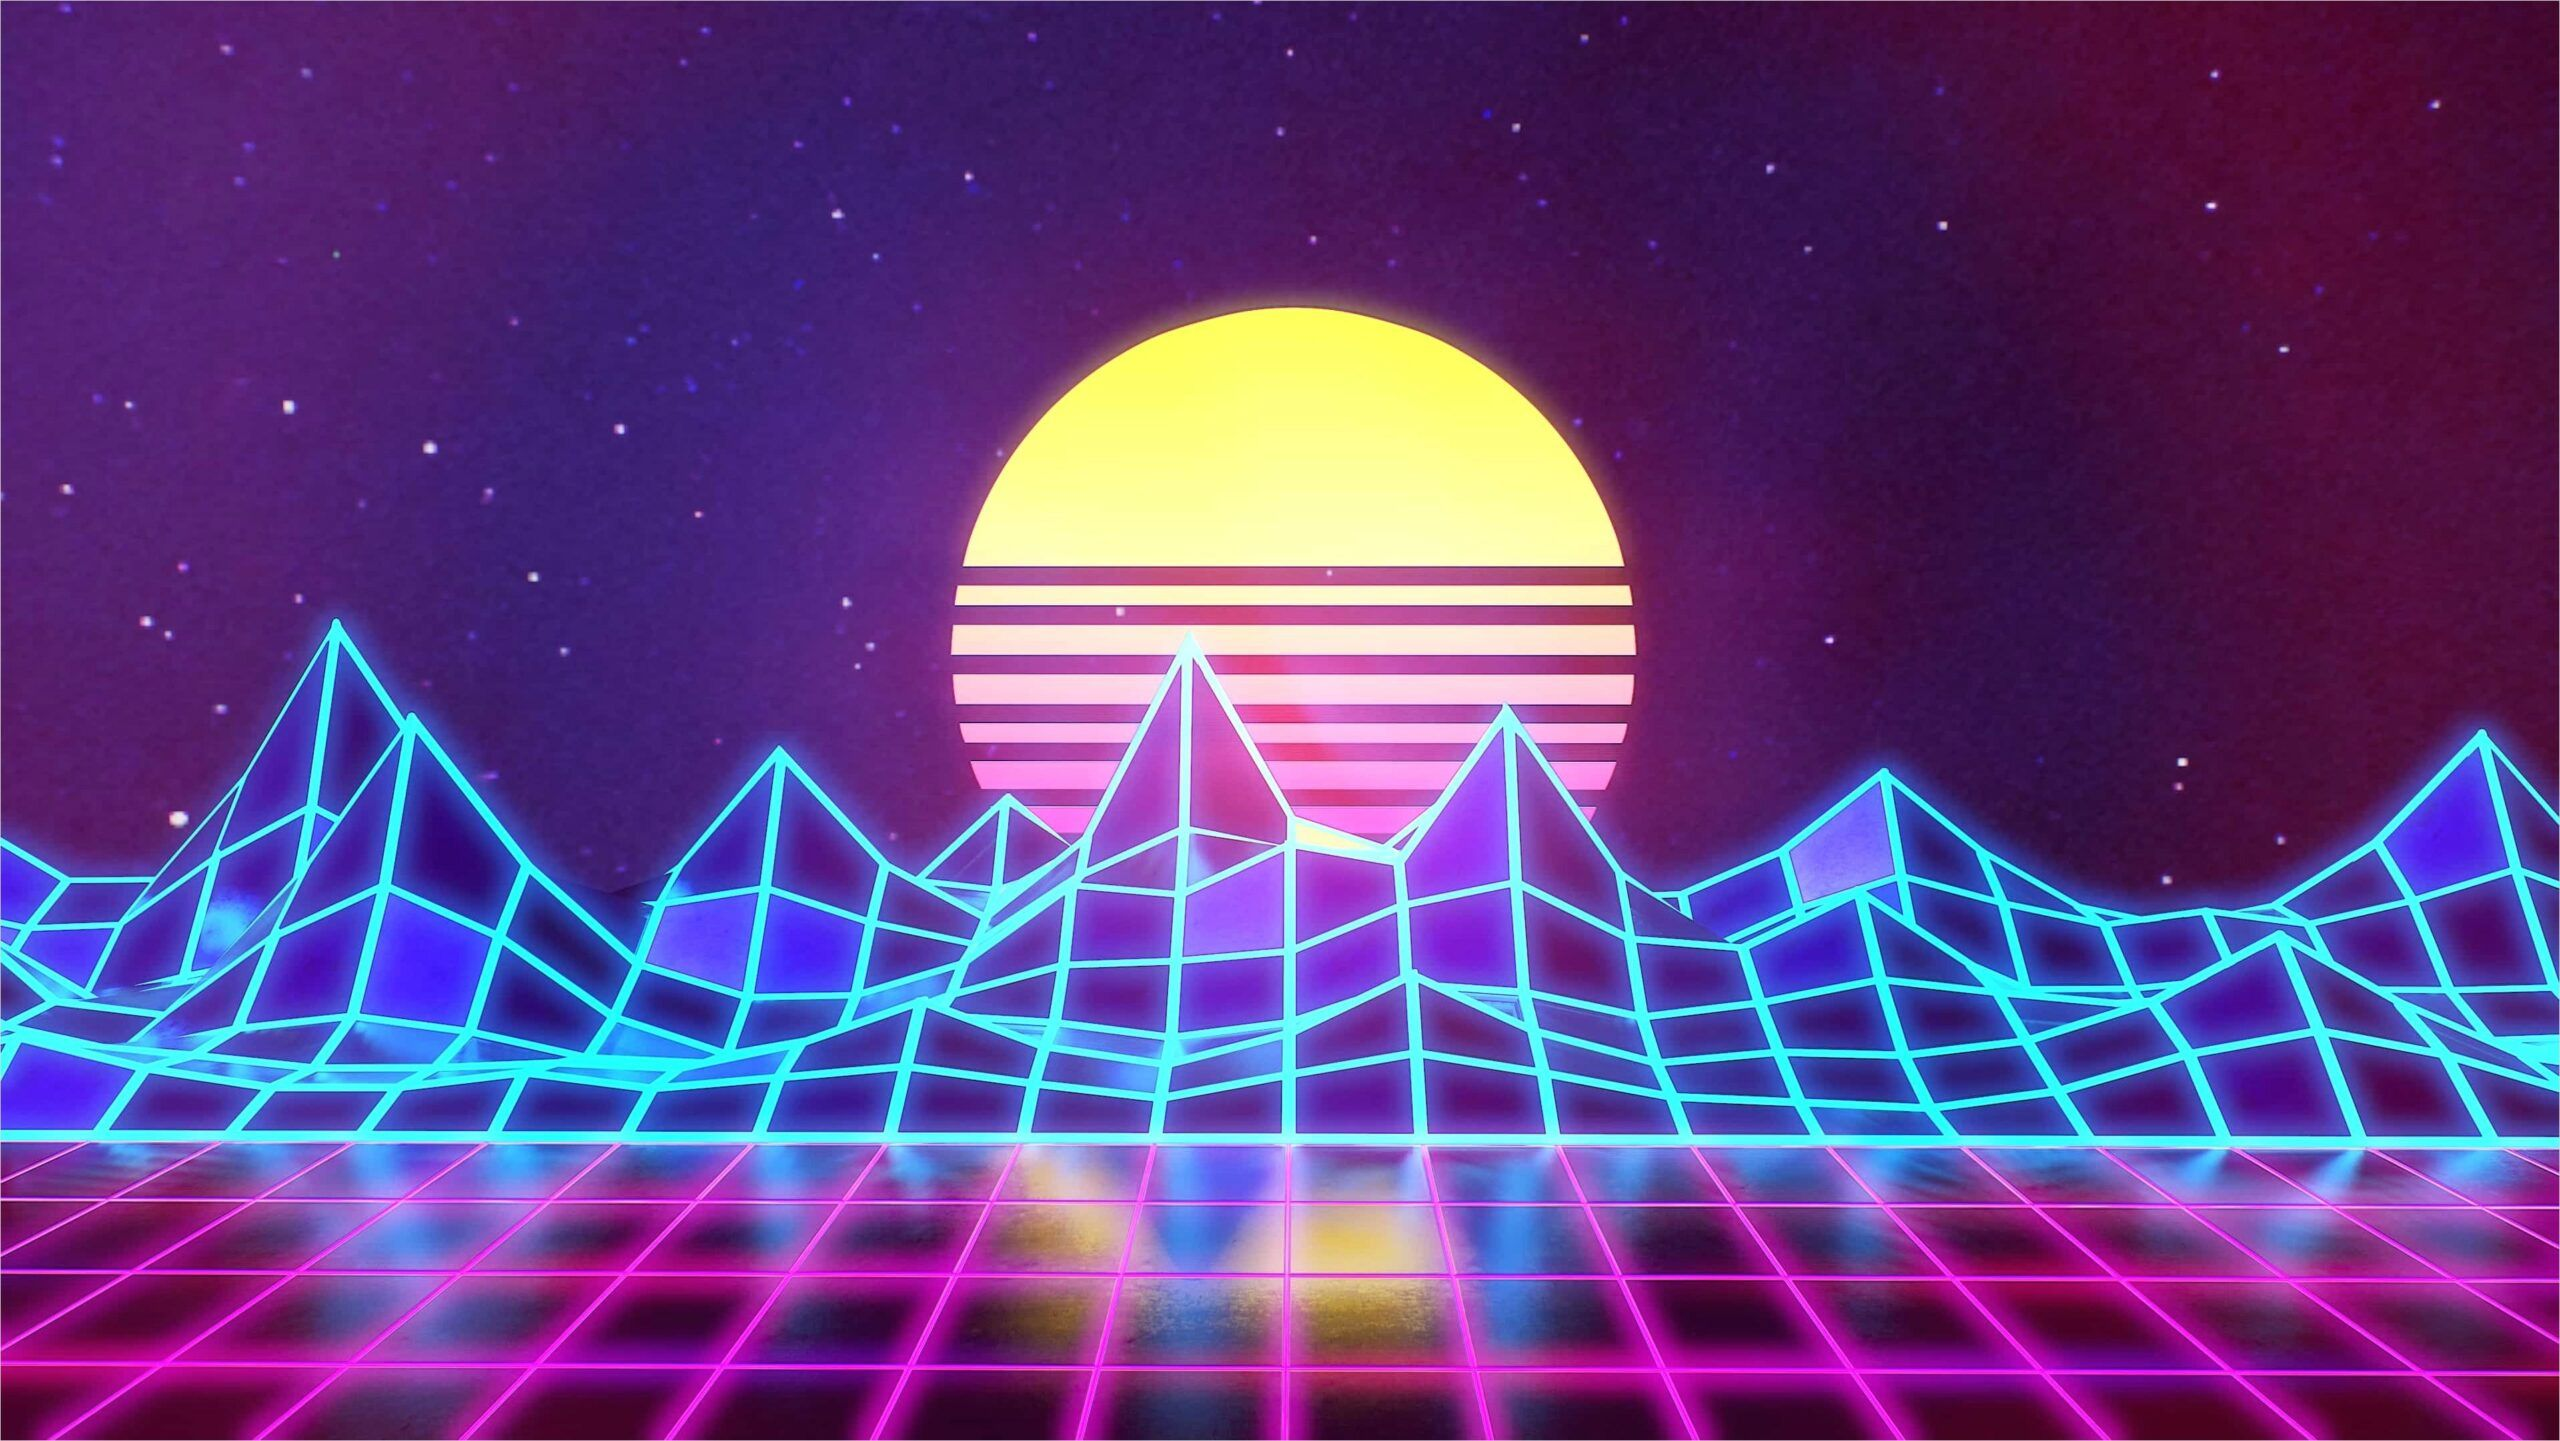 4k 3840×2160 Vaporwave Japanese Wallpaper in 2020 80s